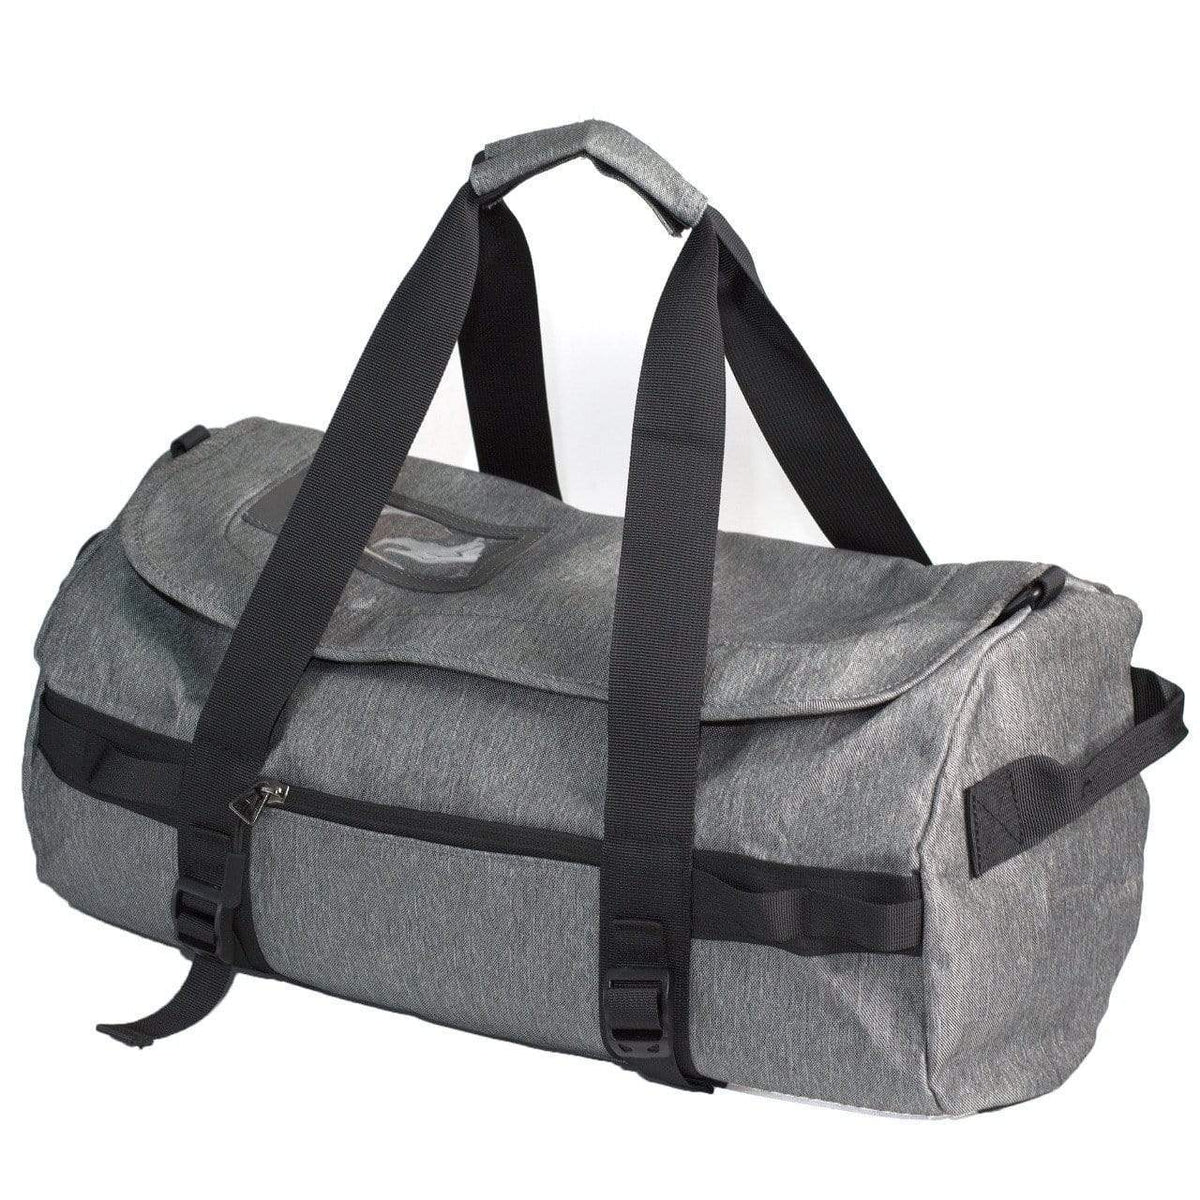 Gym Bag Outdoor Sports Gym Shoulder Bag